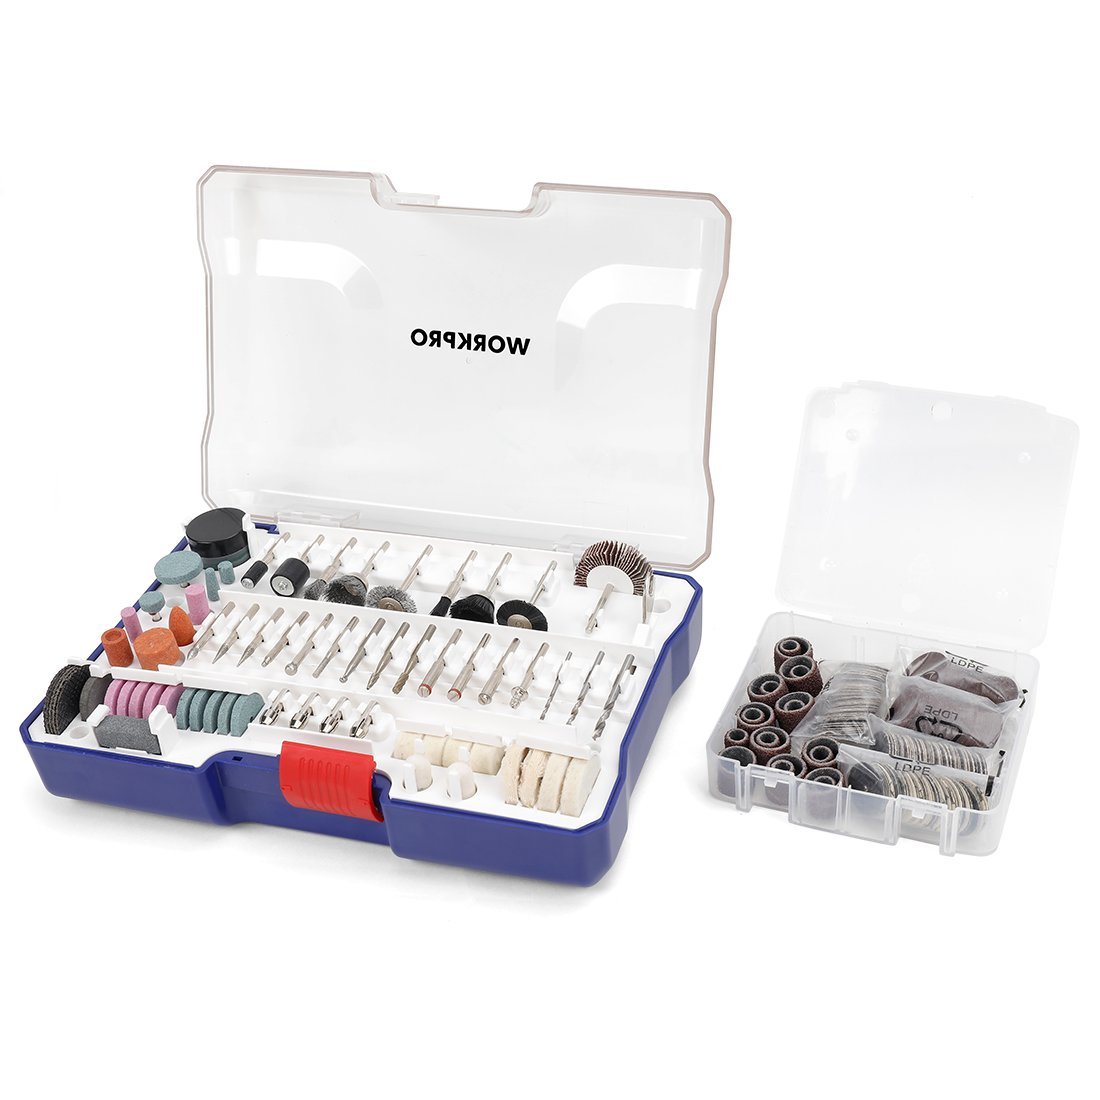 WORKPRO Rotary Tool Accessories Kit, 295-piece in Compact Case, Universal for Major Brands